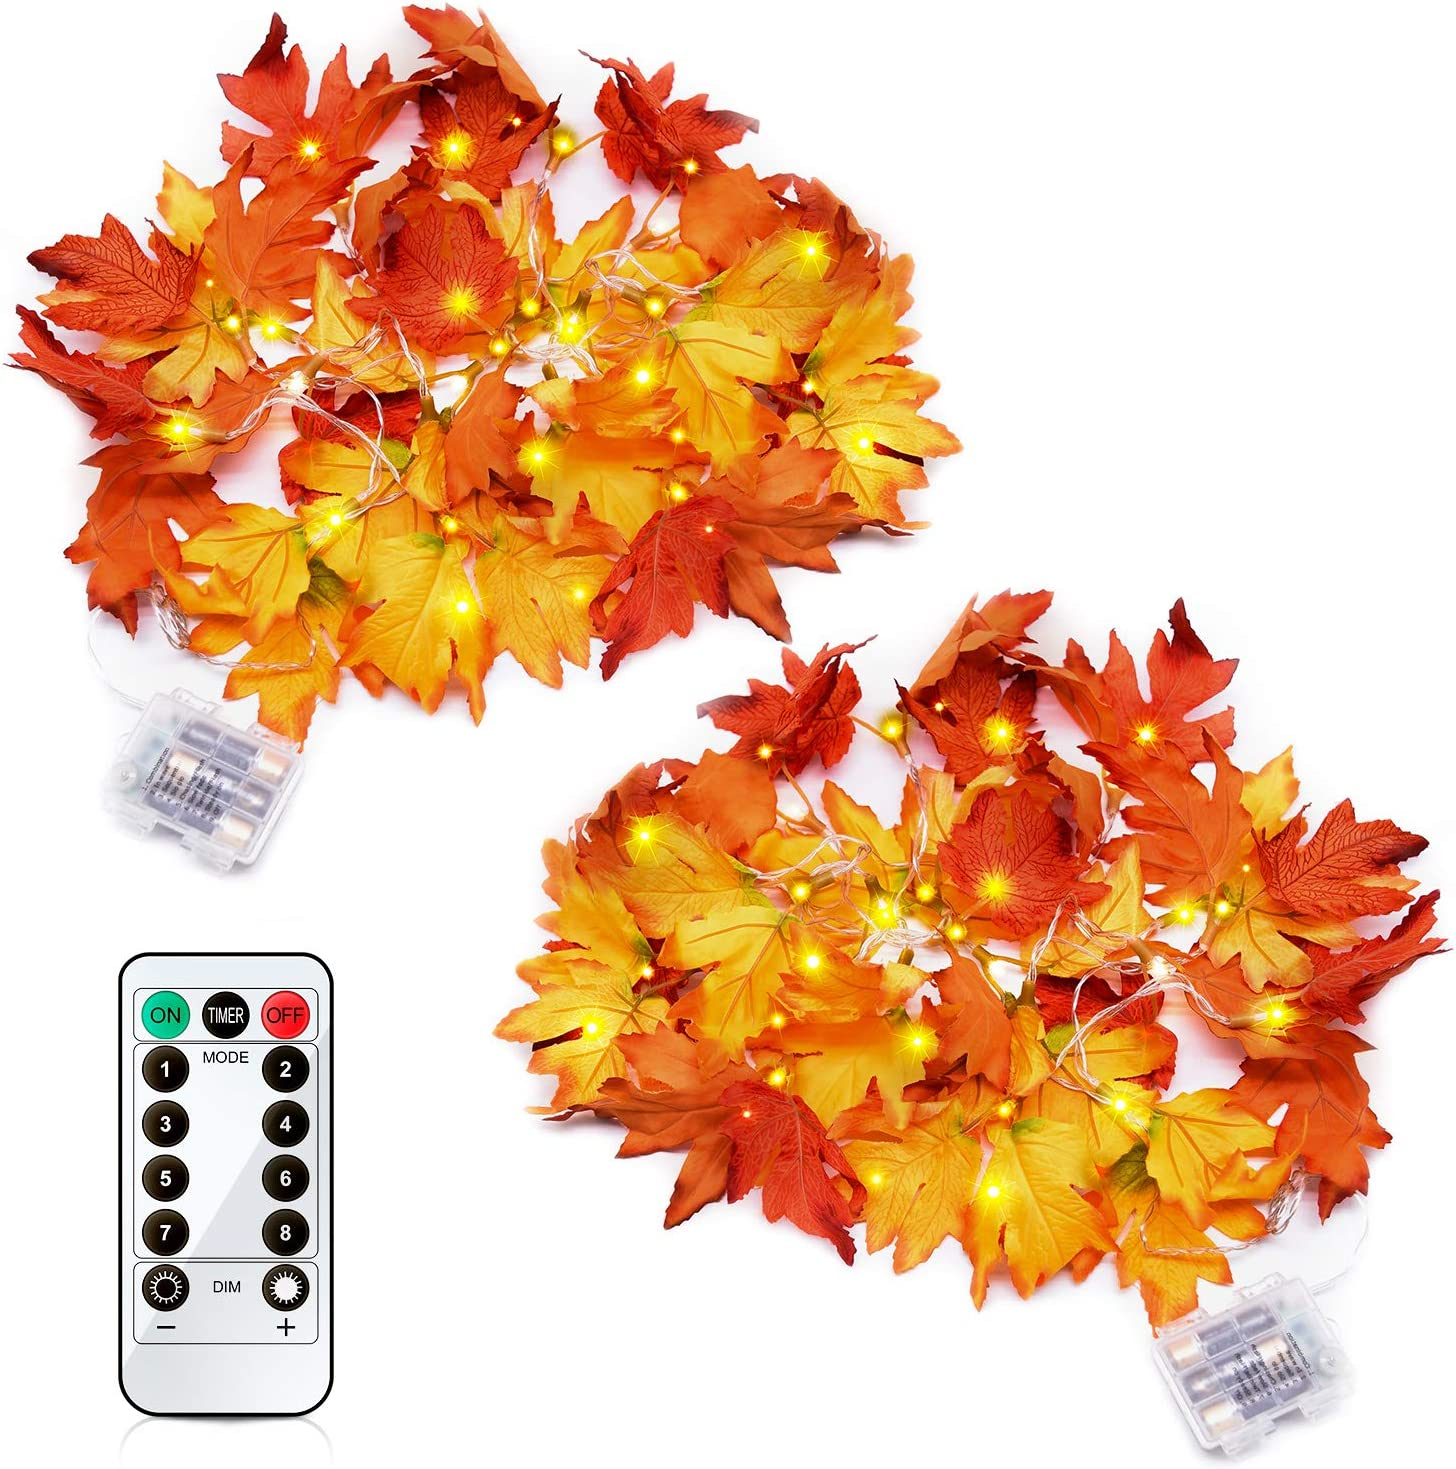 GEJRIO Thanksgiving Decorations Lighted Fall Garland 8.2ft 20 LED - Christmas Decor Lights with Remote Control Timer for Thanksgiving Gift Party Christmas Decorations Maple Leaf String Lights